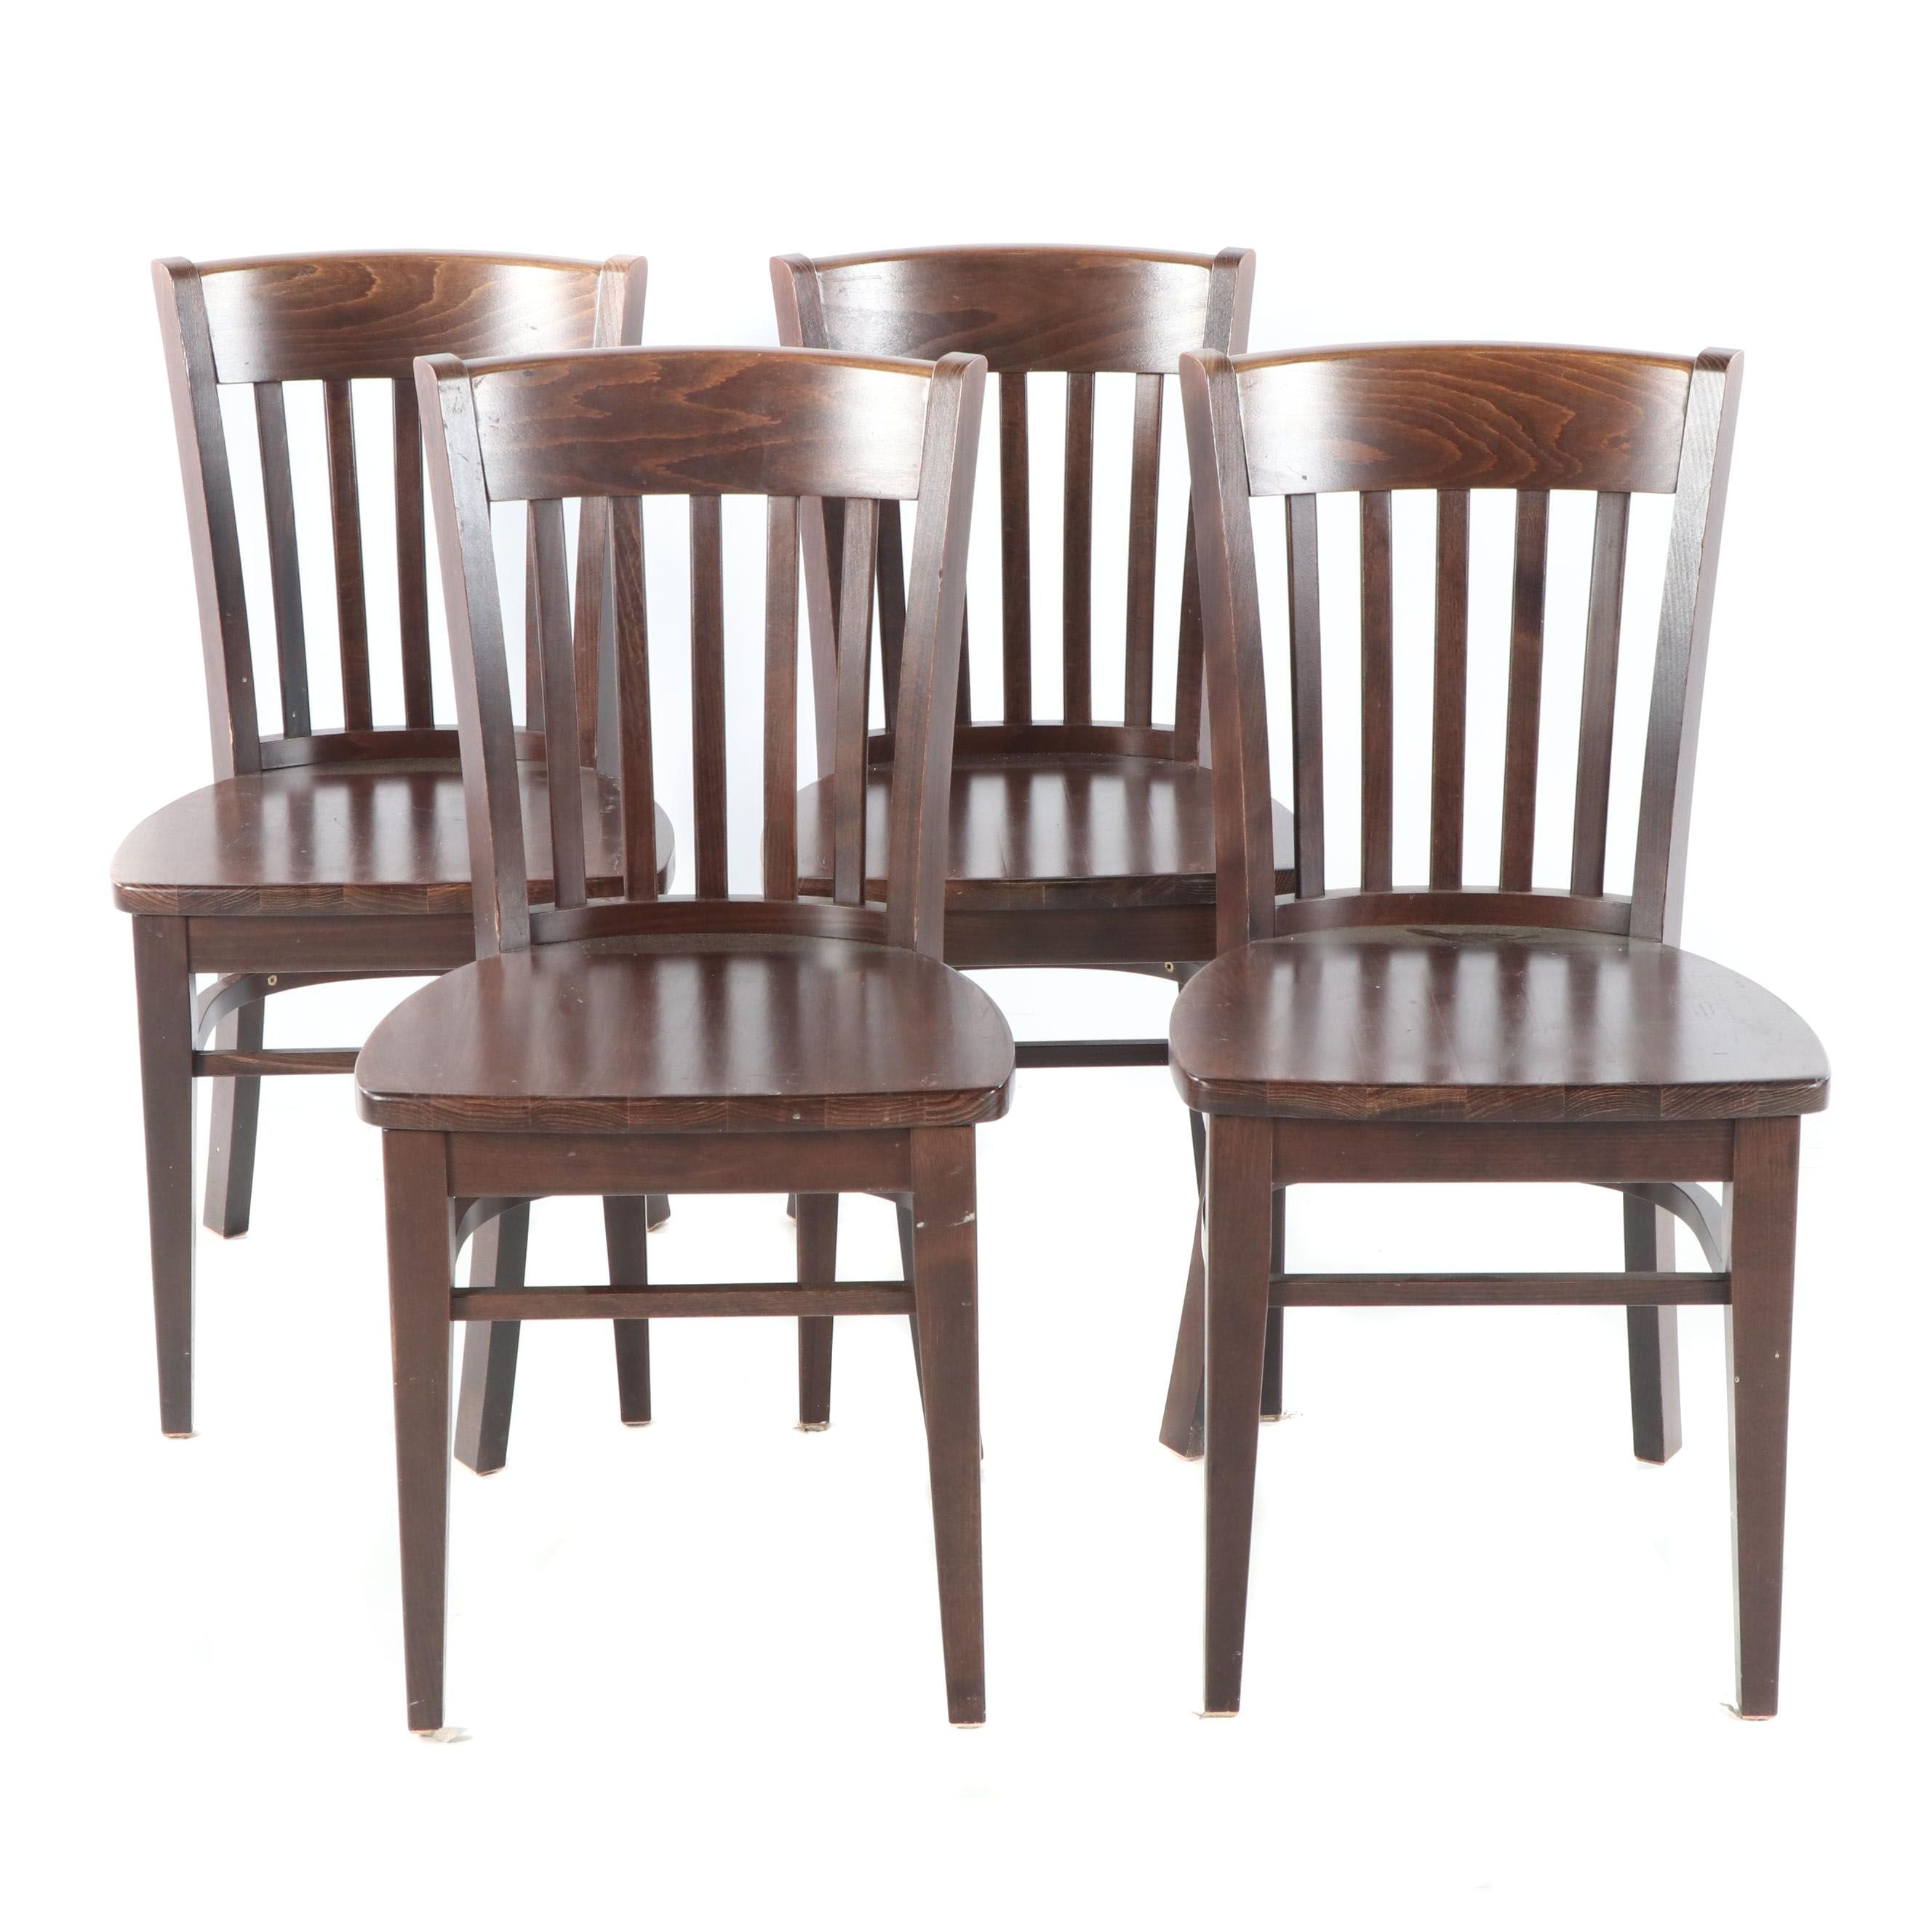 Stained Oak Slat Back Dining Chairs Set, 21st Century